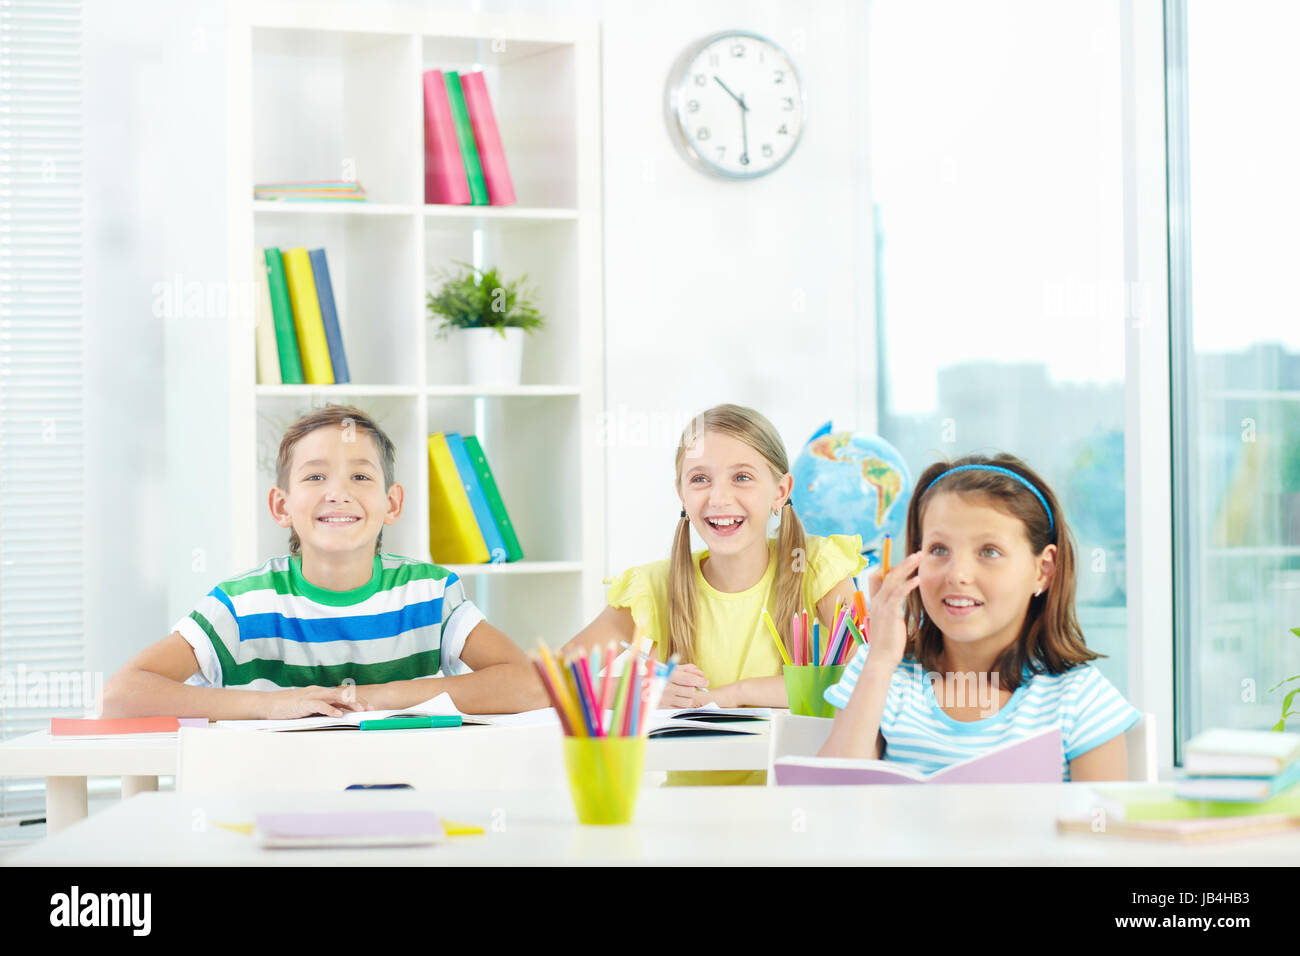 Portrait of joyful schoolmates looking at something attentively at lesson - Stock Image